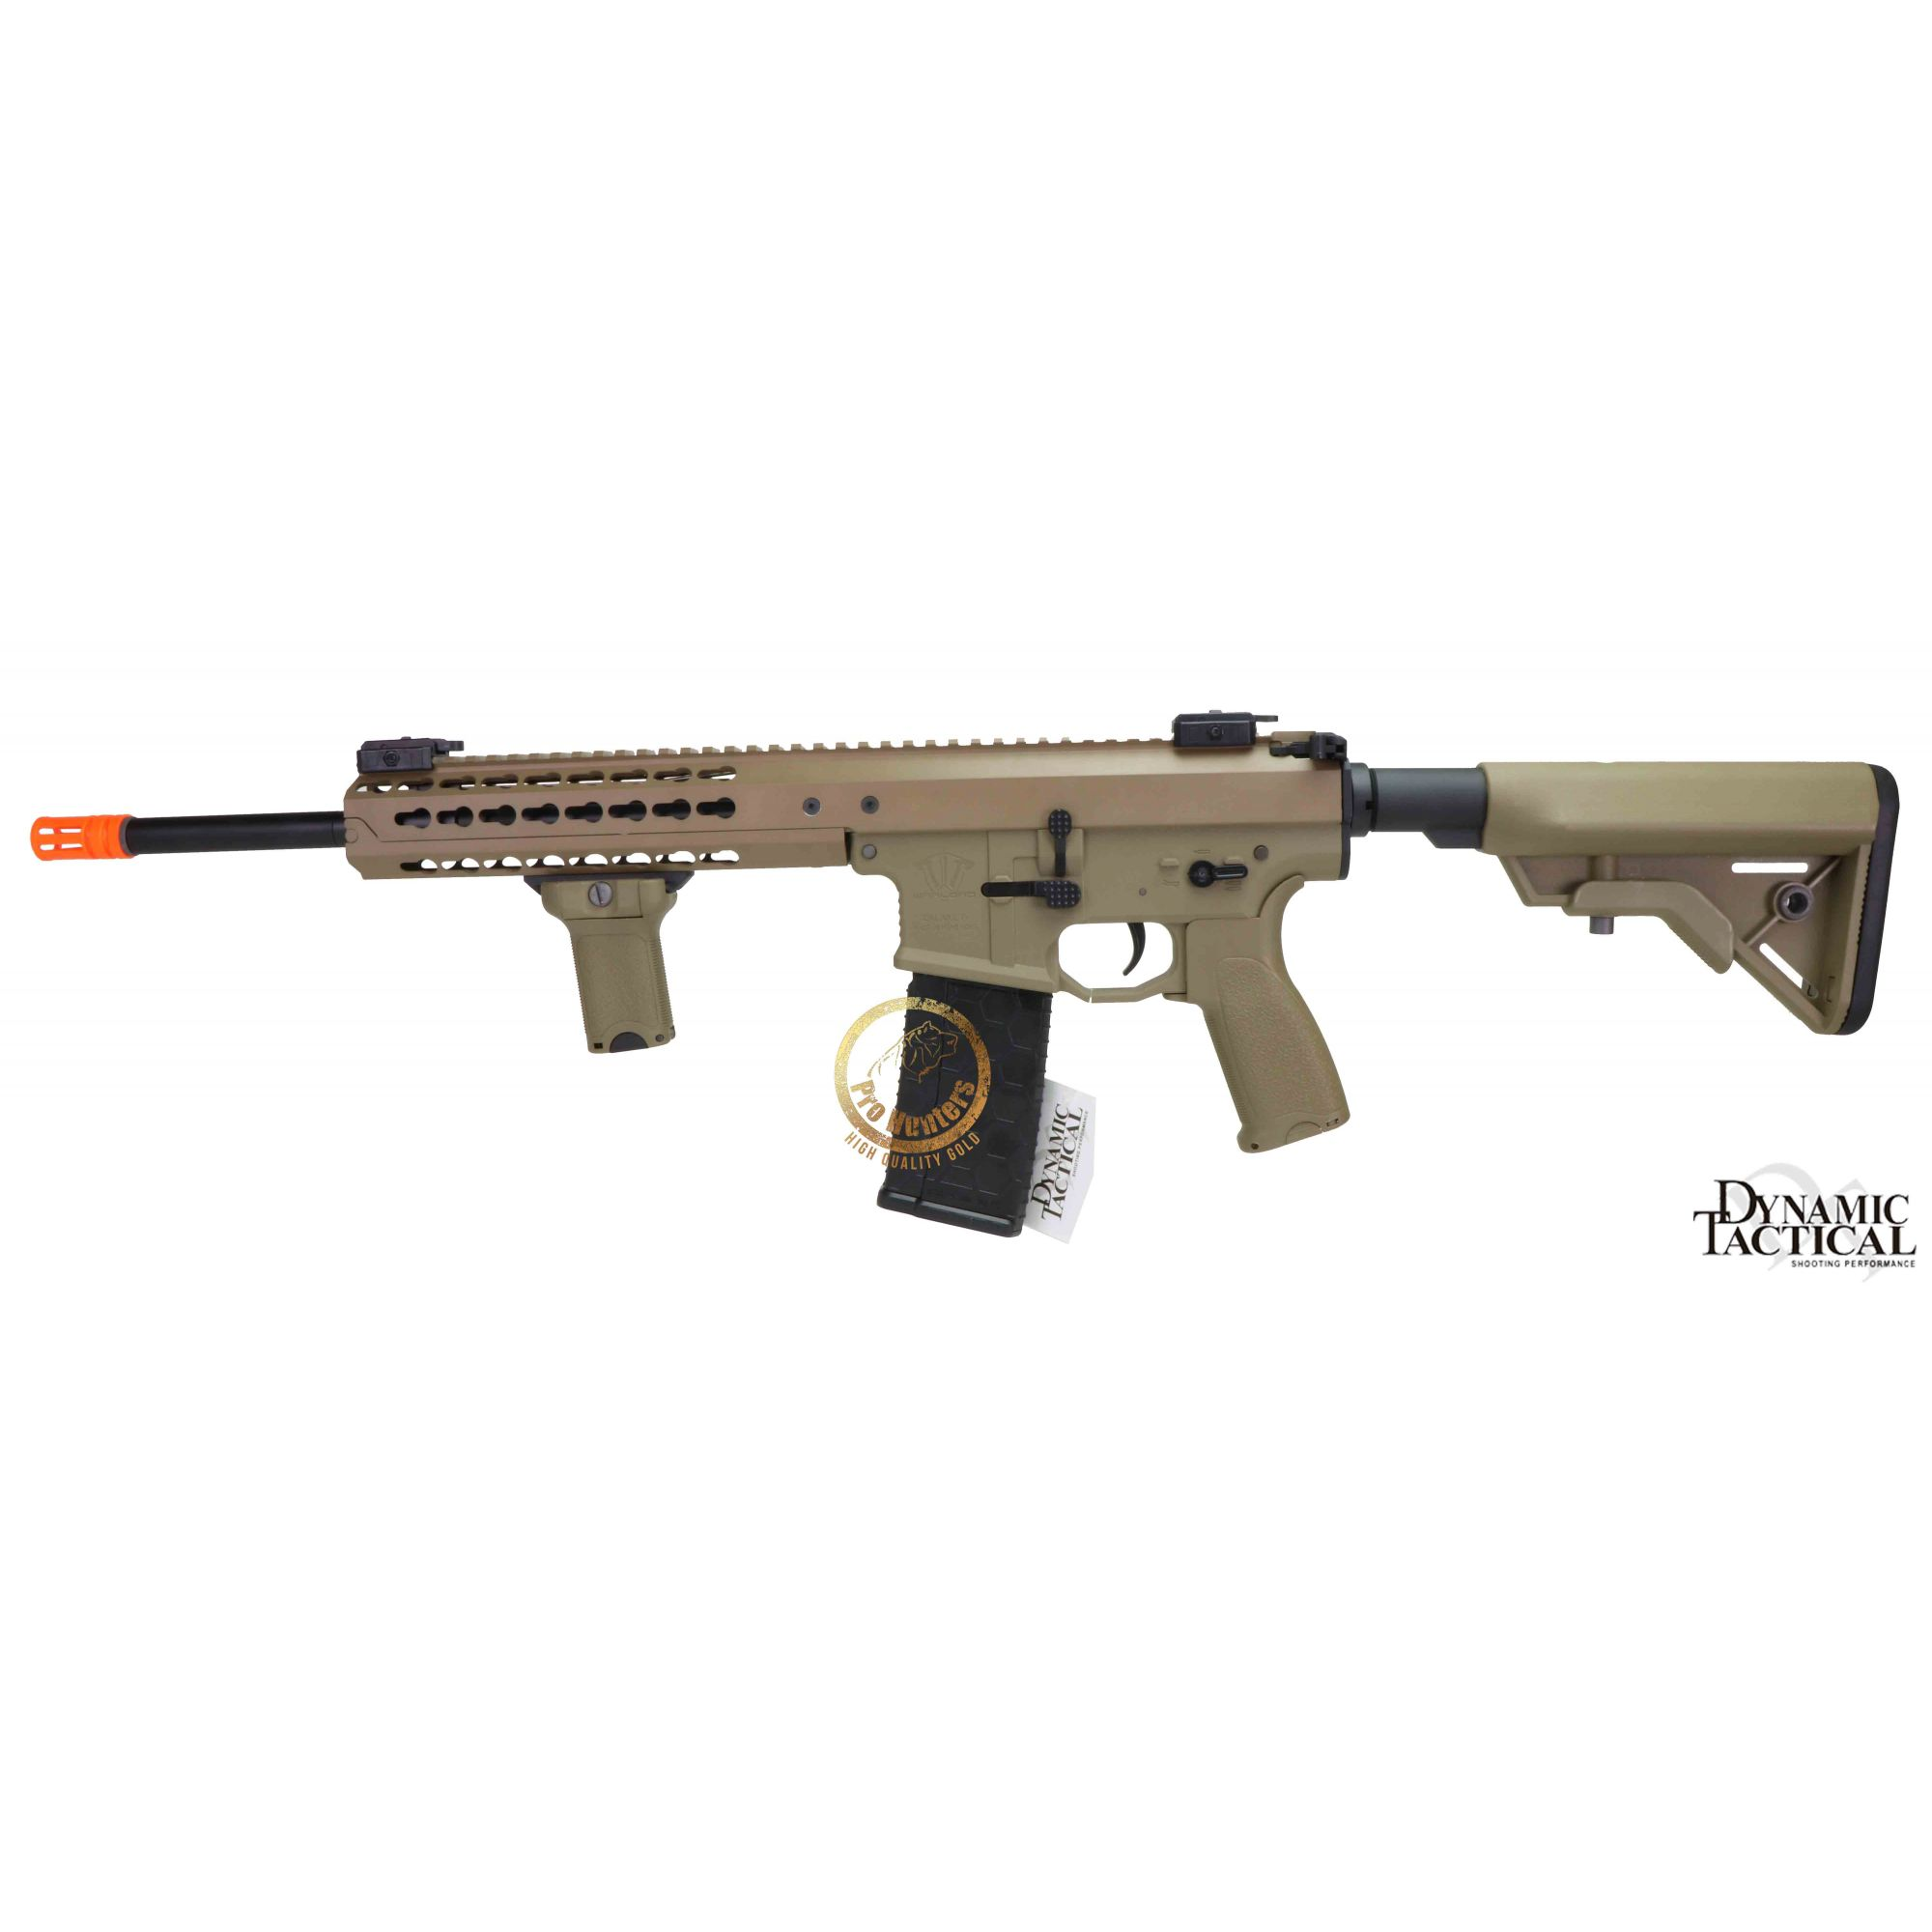 Rifle Airsoft Dytac Warlord Carbine Type B - Magpul Dark Earth